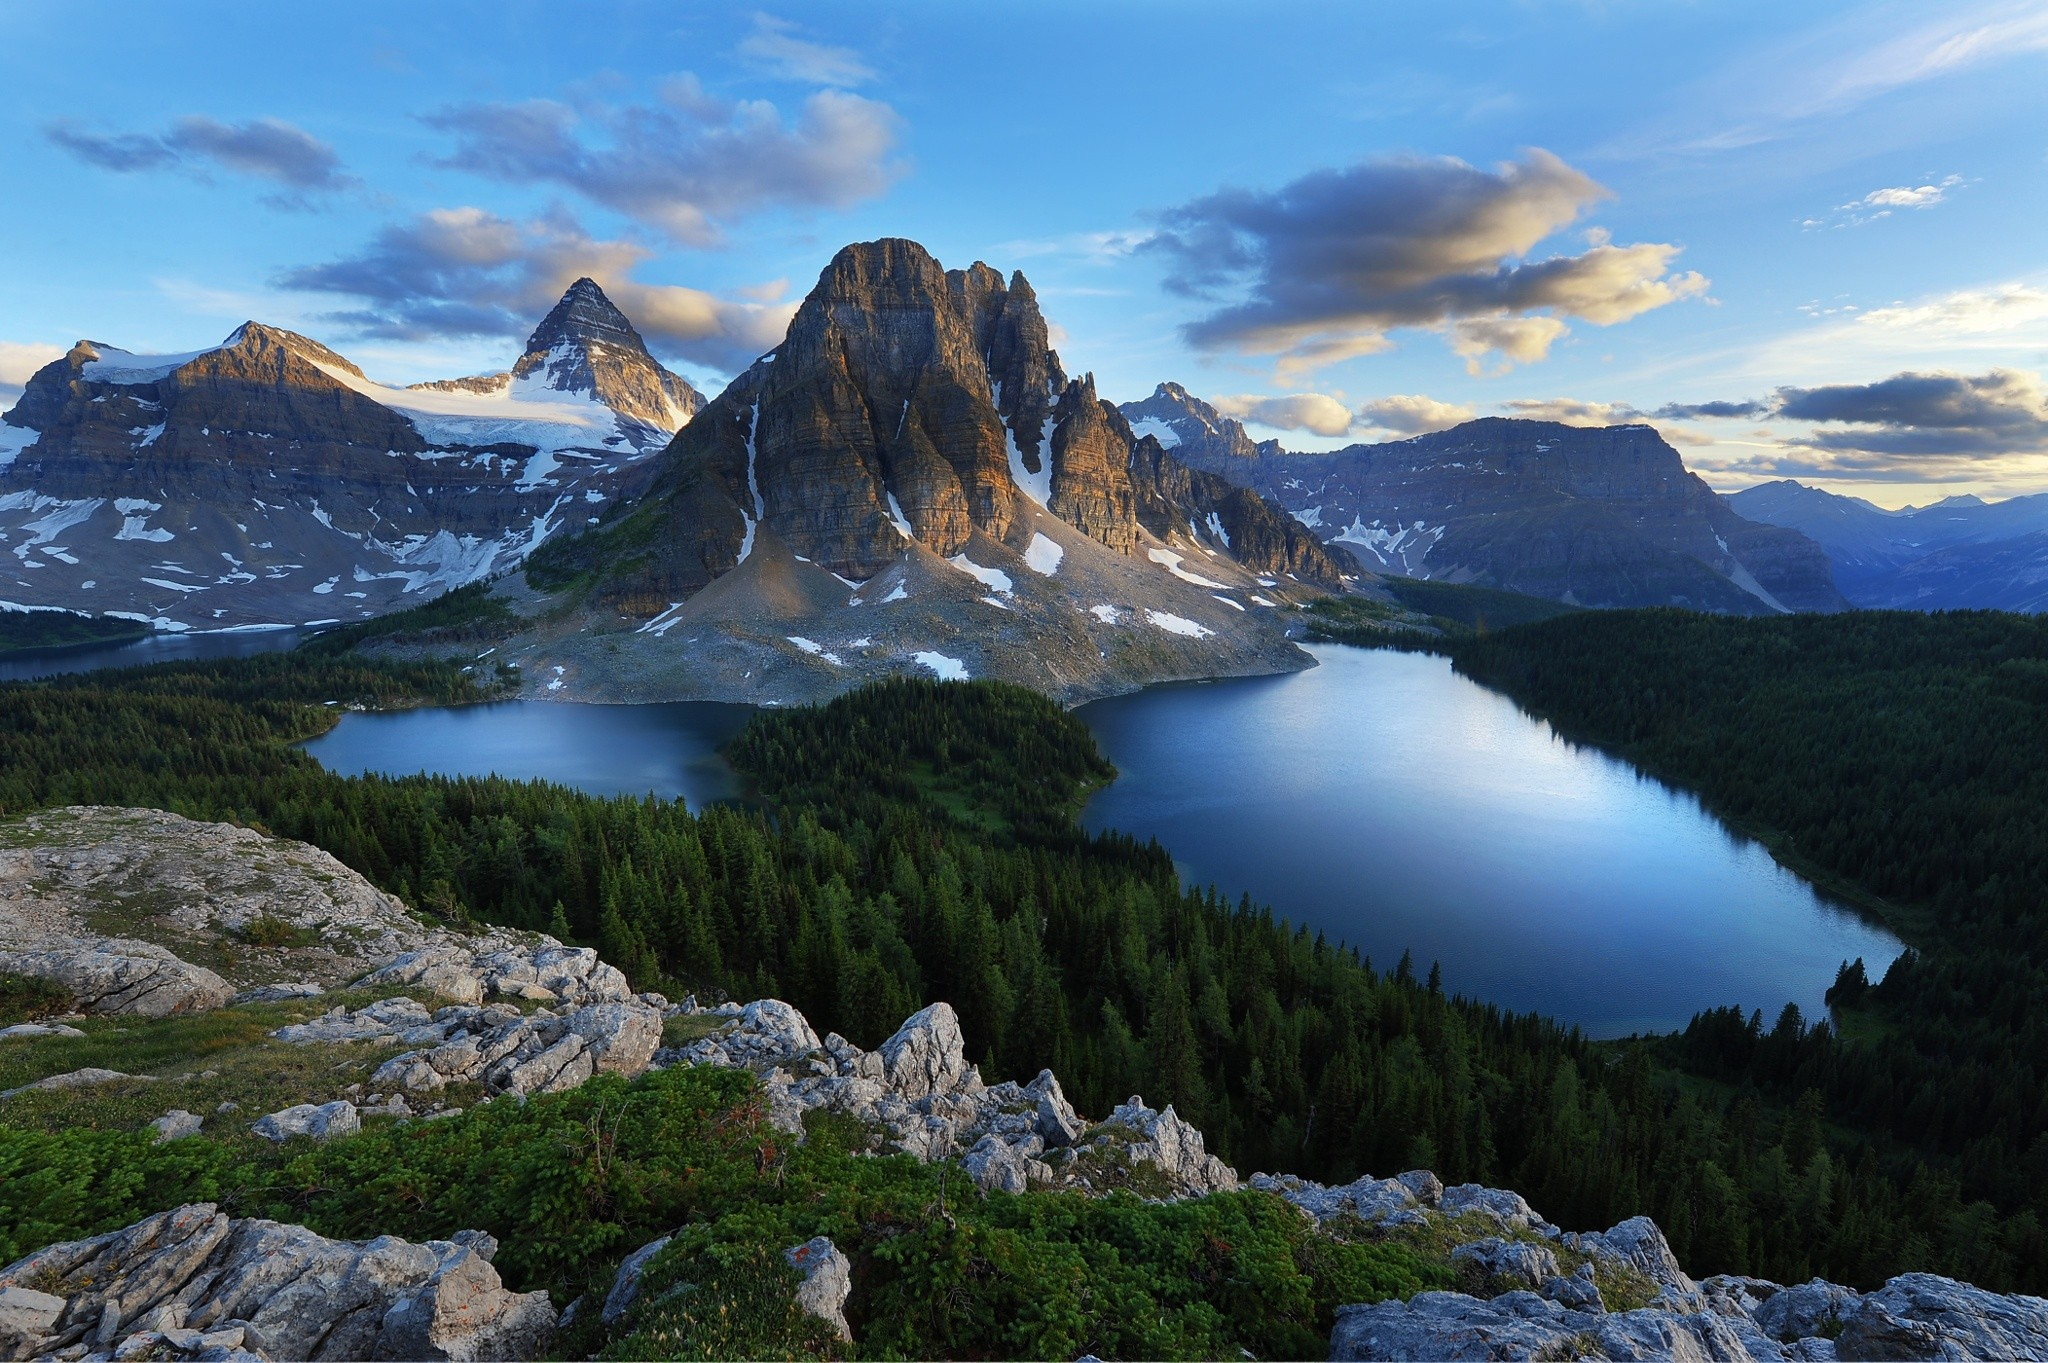 Forest Mountains Snow Morning Summer British Columbia Nature Landscape Lake Banff National Park 2048x1363